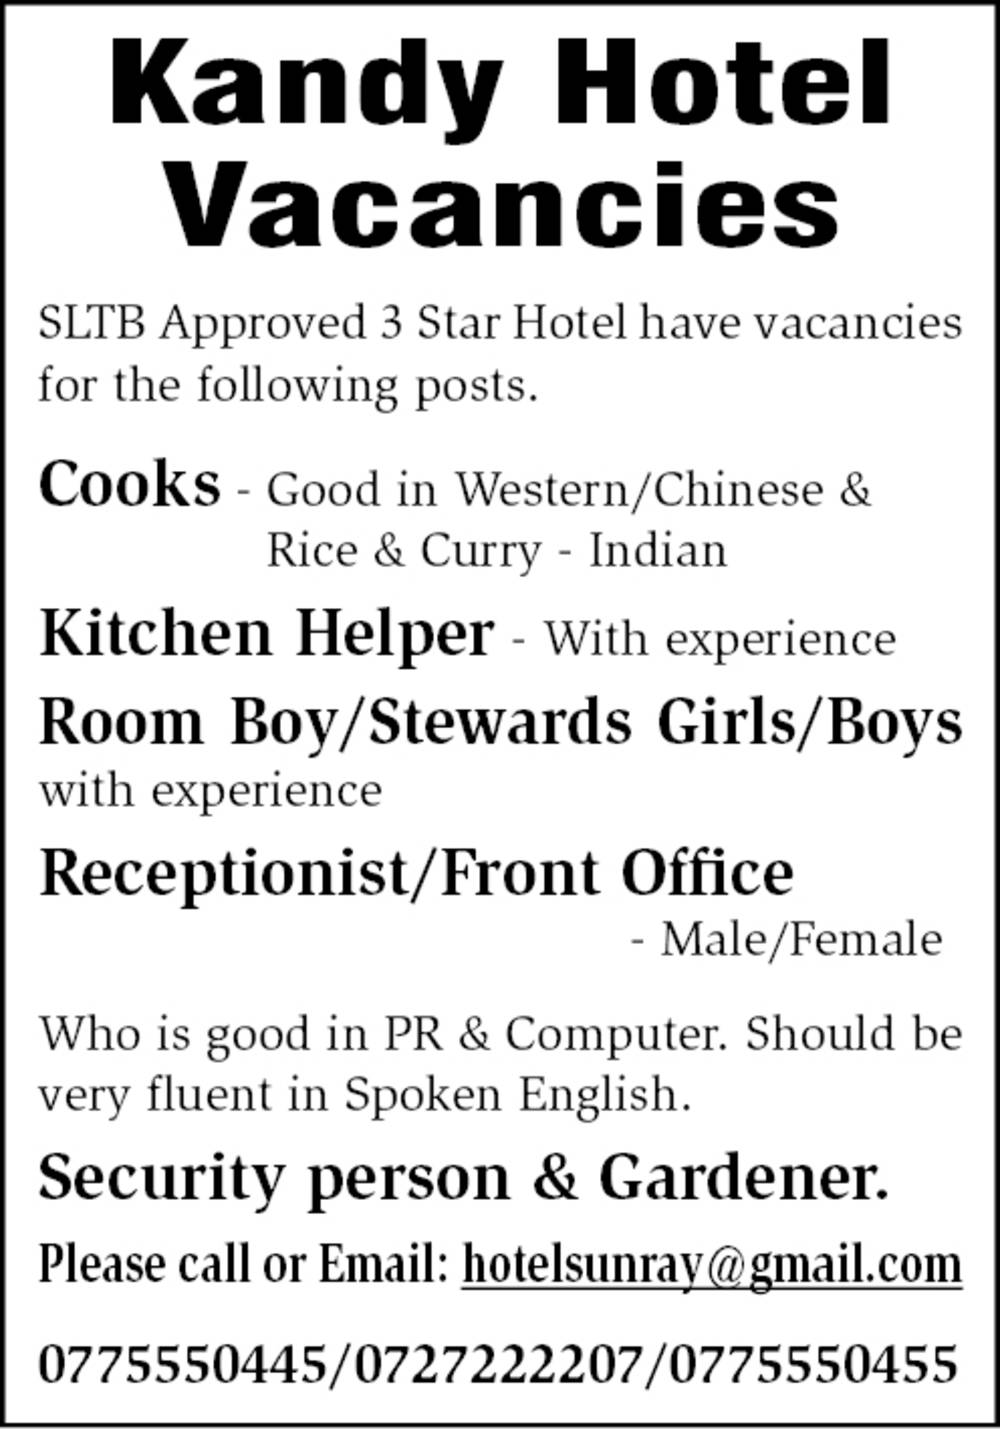 Cooks, Kichen Helper, Room Boy, Stewards Girls/ Boys, Receptionist, Front Office, Security Person, Gardner